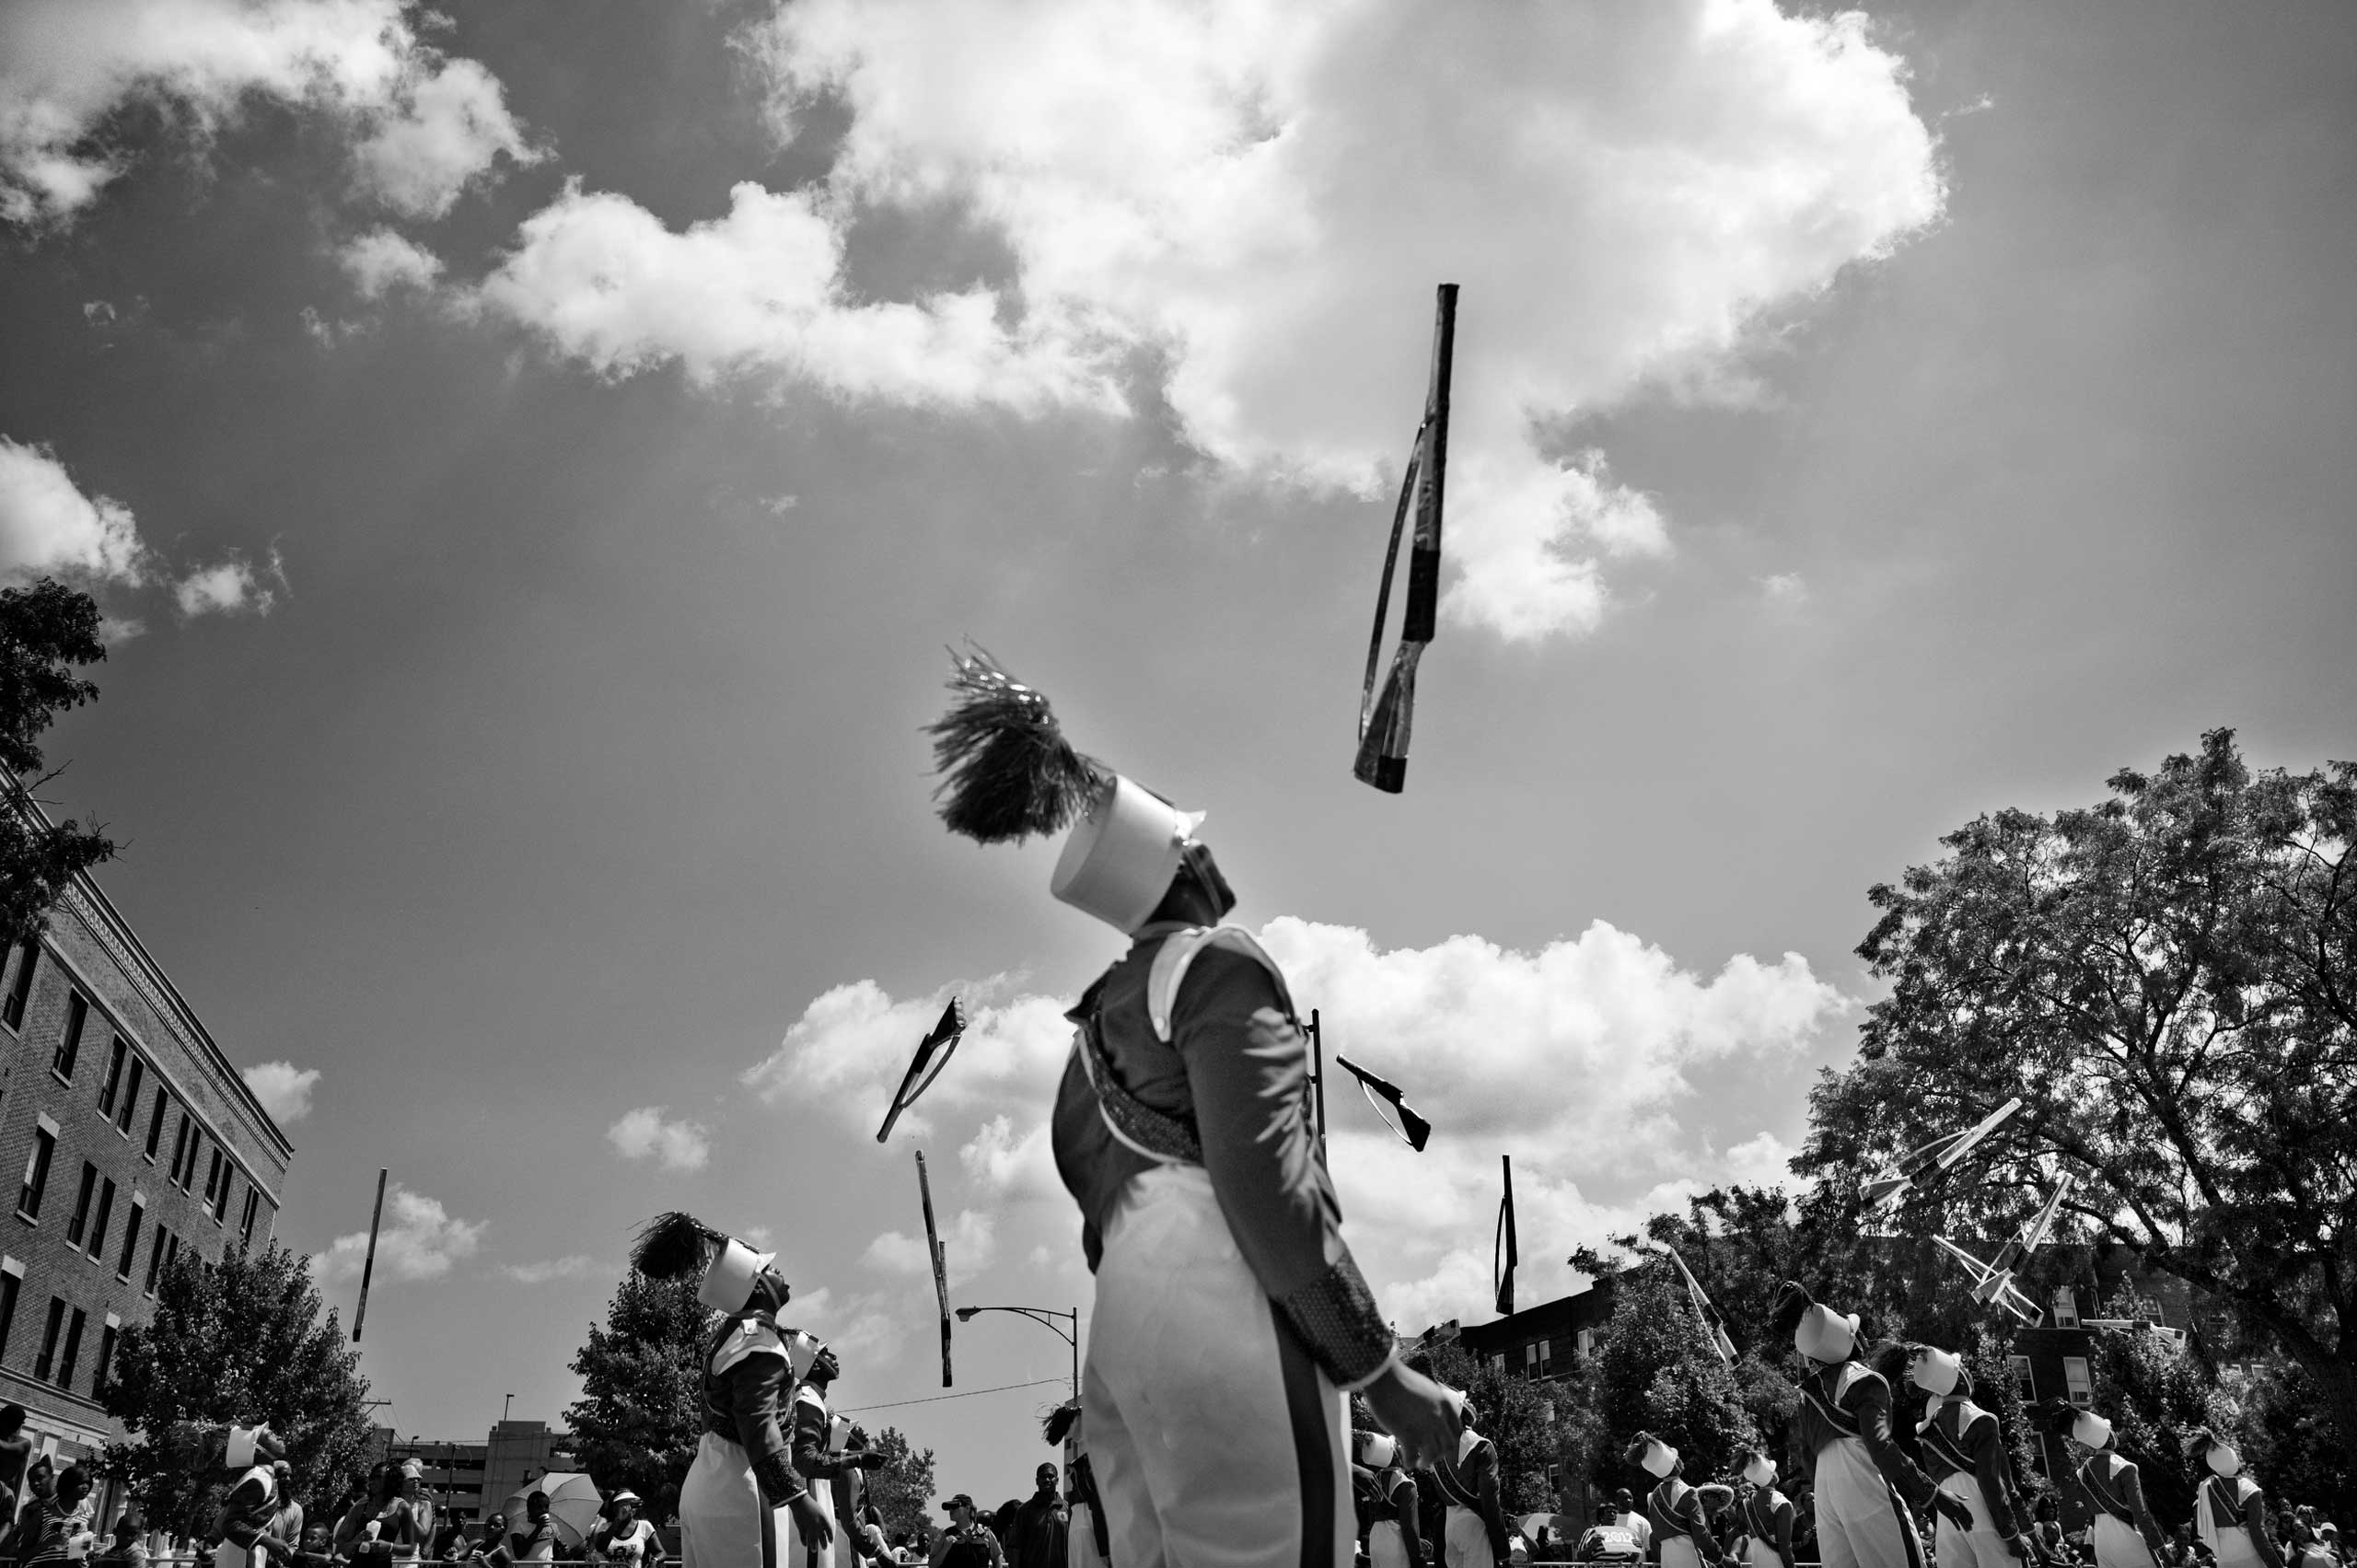 The Bud Billiken parade, the oldest African-American parade in the country, kicks off the new school year and celebrates black life in Chicago. Washington Park, Chicago, 2013.